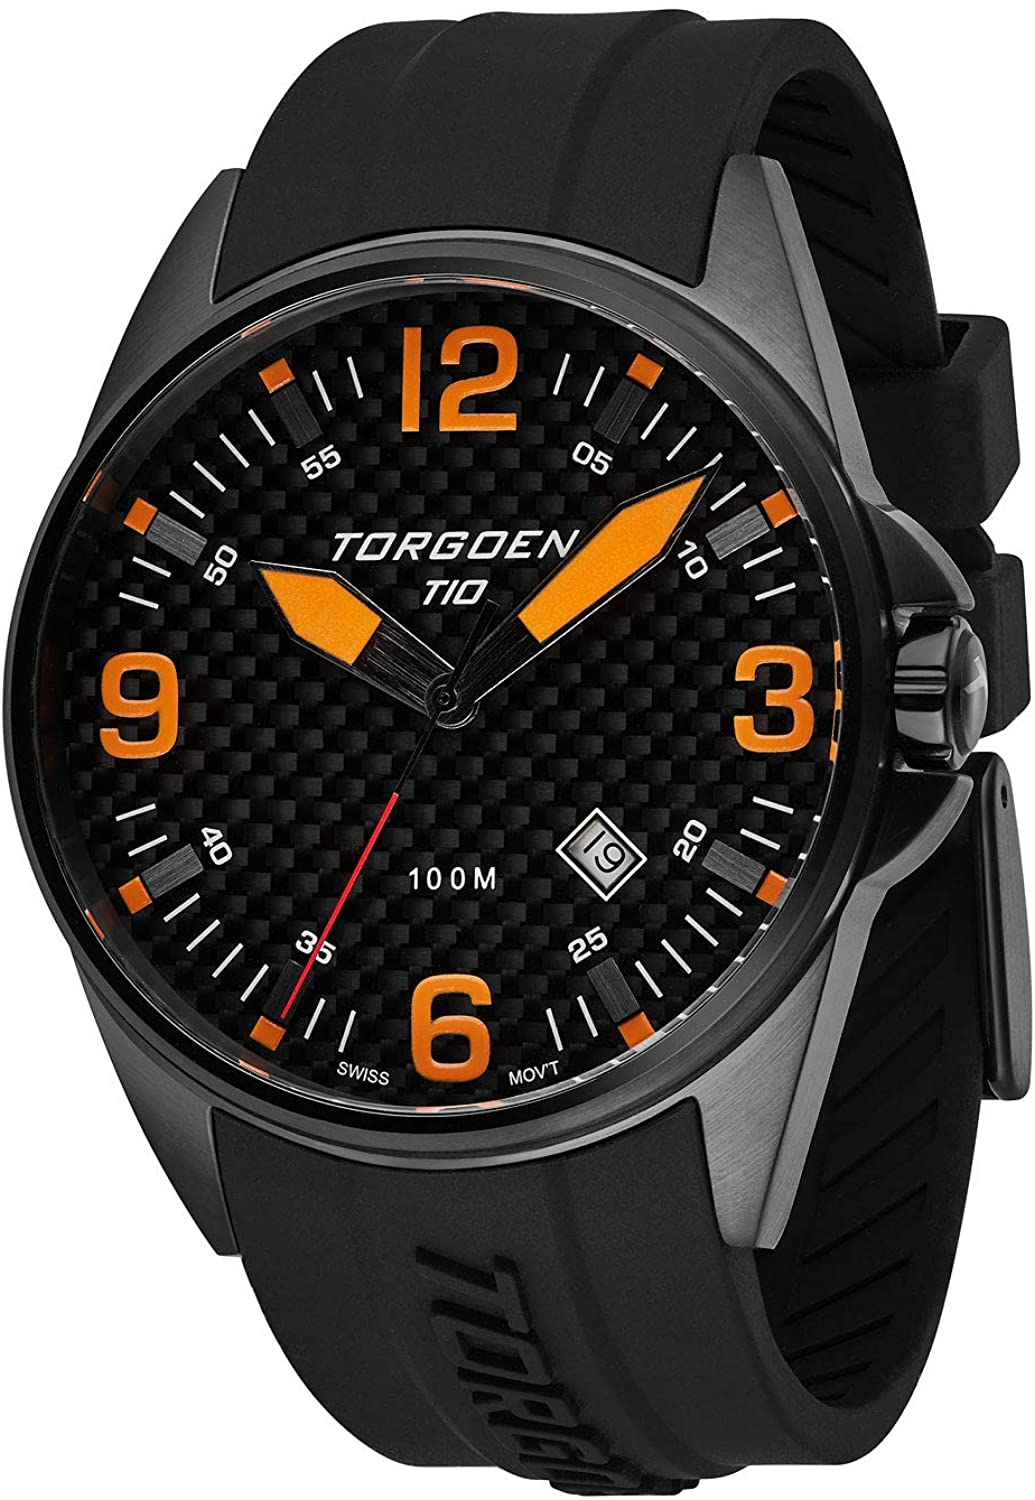 Torgoen T10 Carbon Fiber Pilot Watch with Sapphire Crystal | 44mm - Black Silicone Strap